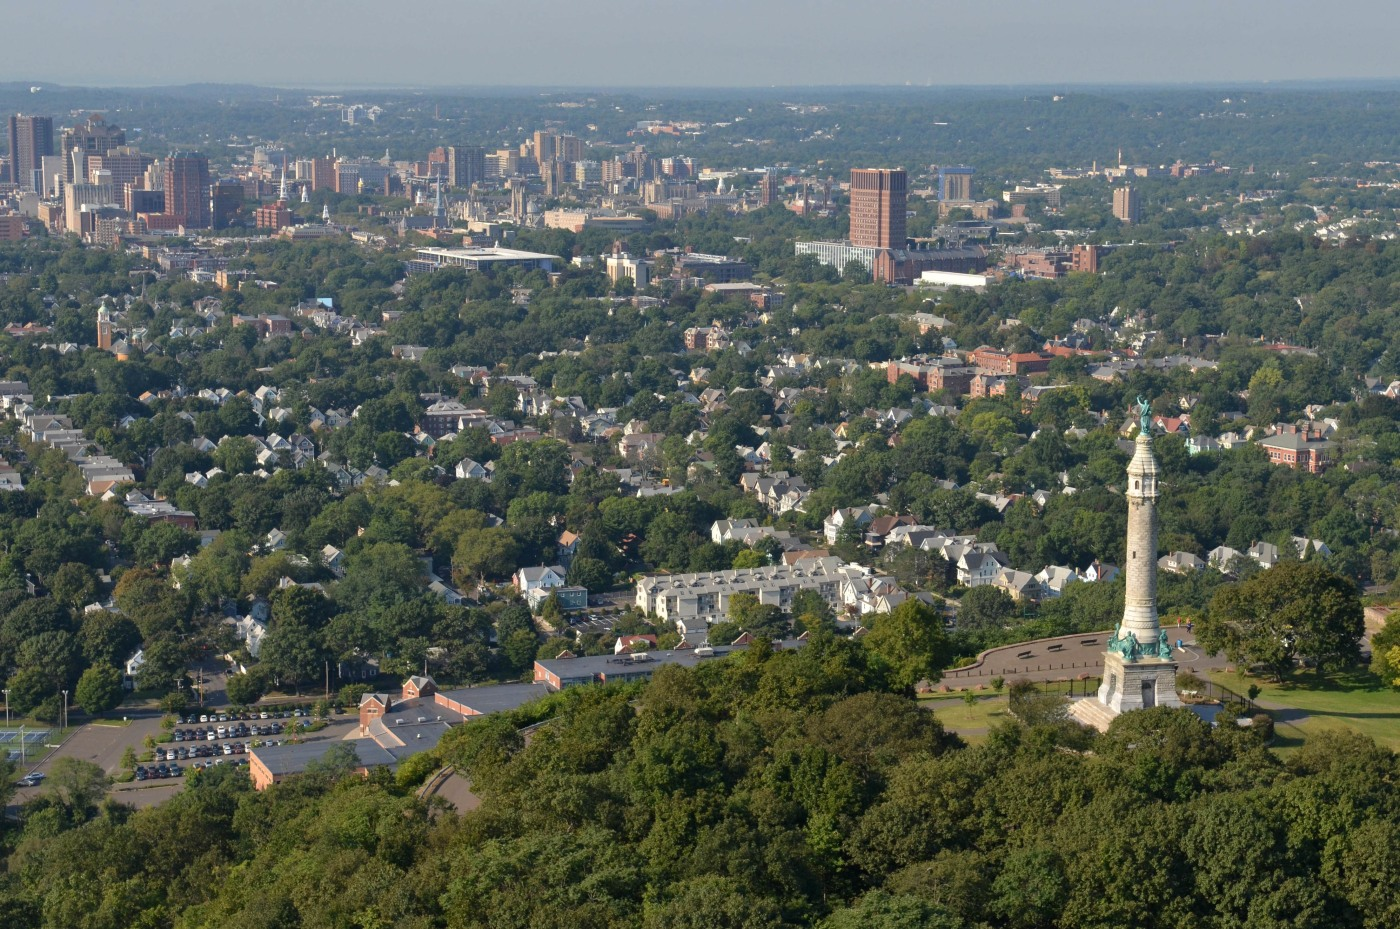 Aerial view of New Haven, CT